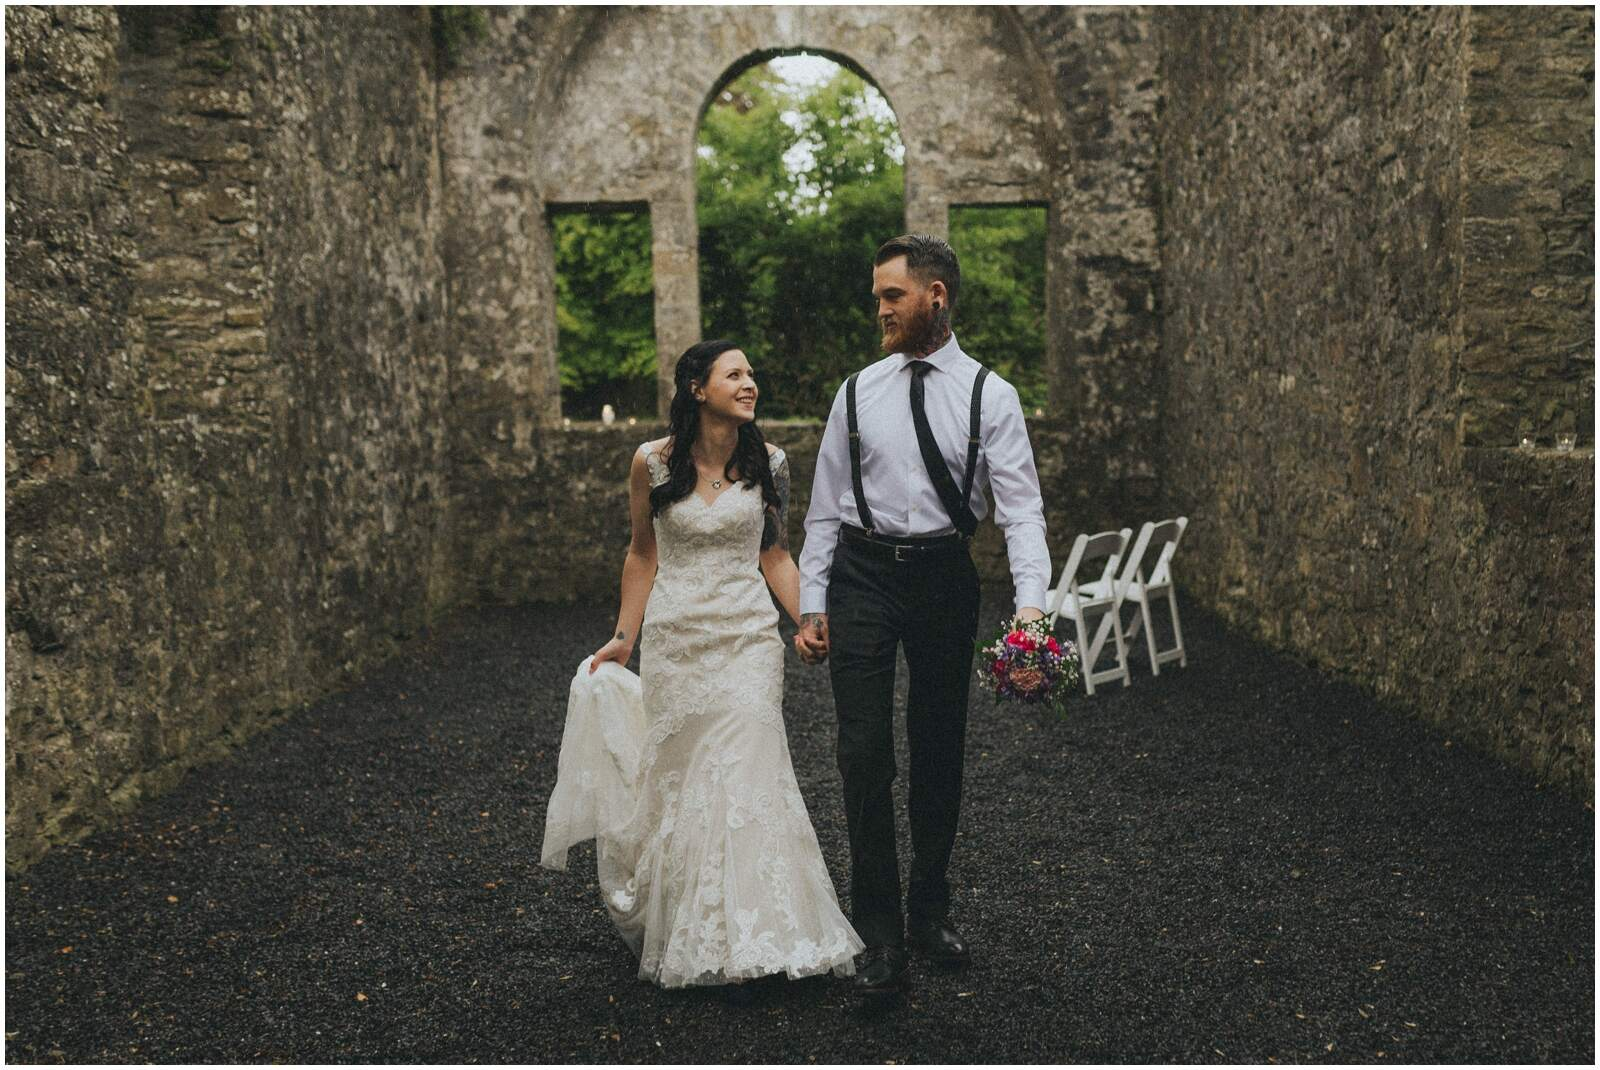 Julia & Donovan - Elopements in Loughcrew Lodge 21